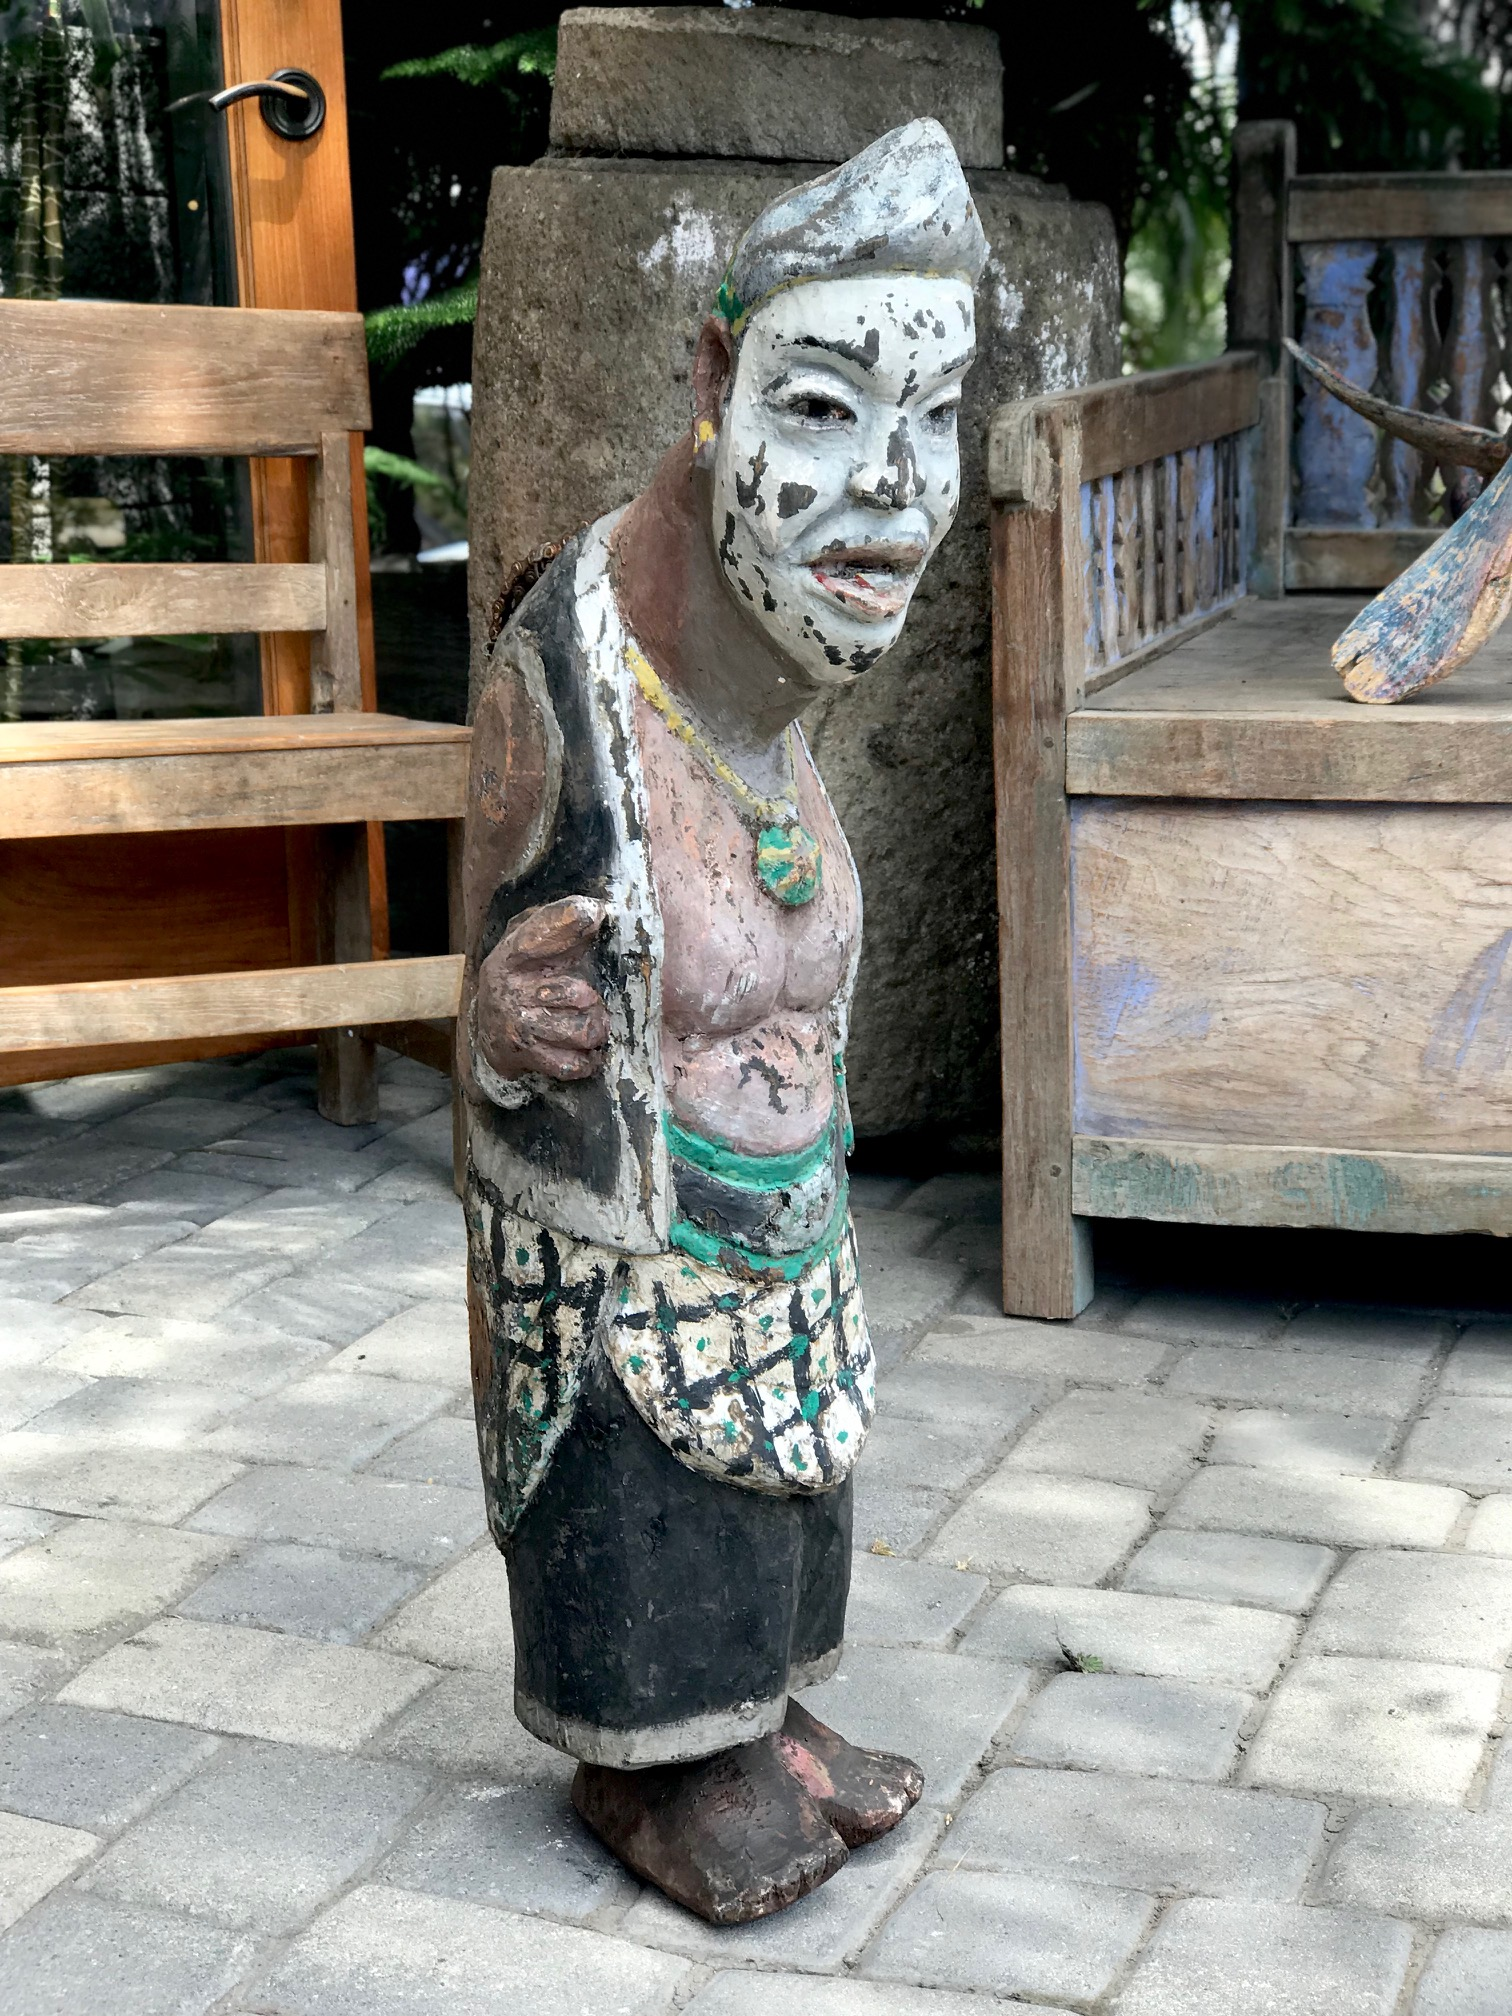 """Tribal Musical Instrument, Slit Drum/Gong, depicting Semar and important Javanese God/clown, Indonesia, wood, paint, bicycle chain handle, This type of percussion instrument was developed and used by people in forested areas as its sound will carry far through the surrounding jungle and rice fields. Often hung or placed in a drum pavilion or tower and used to call villagers to meetings, or other events by tapping out a signal. 36"""" x 10"""" x 12"""", $750., thedavidalancollection.com , solana beach, ca"""